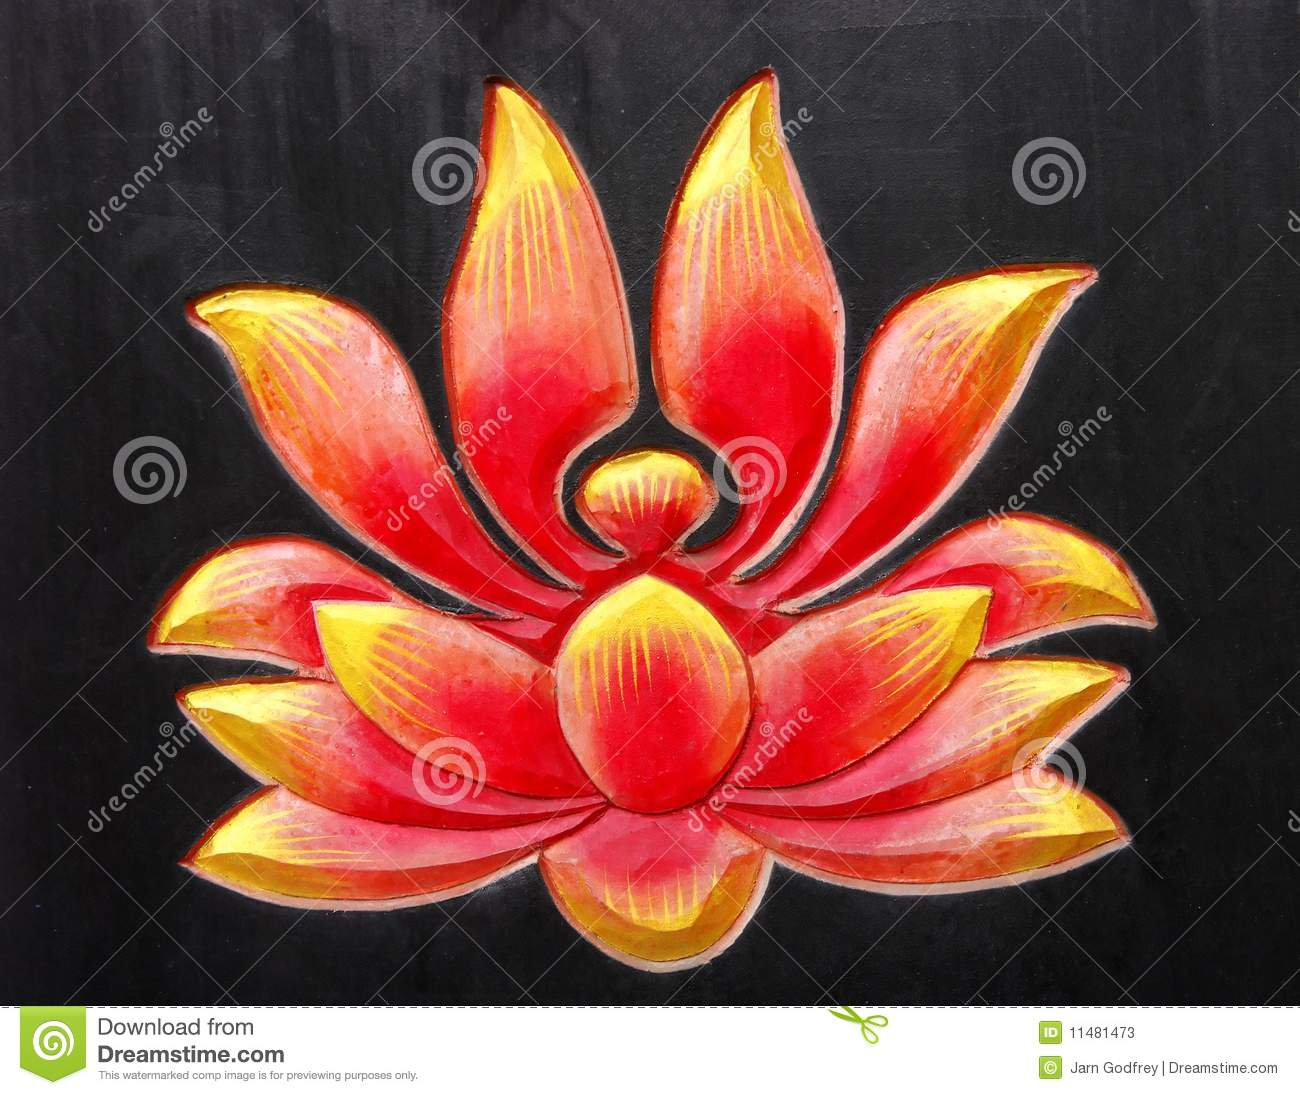 The Godfrey House Plan Buddhist Lotus Design Stock Photos Image 11481473